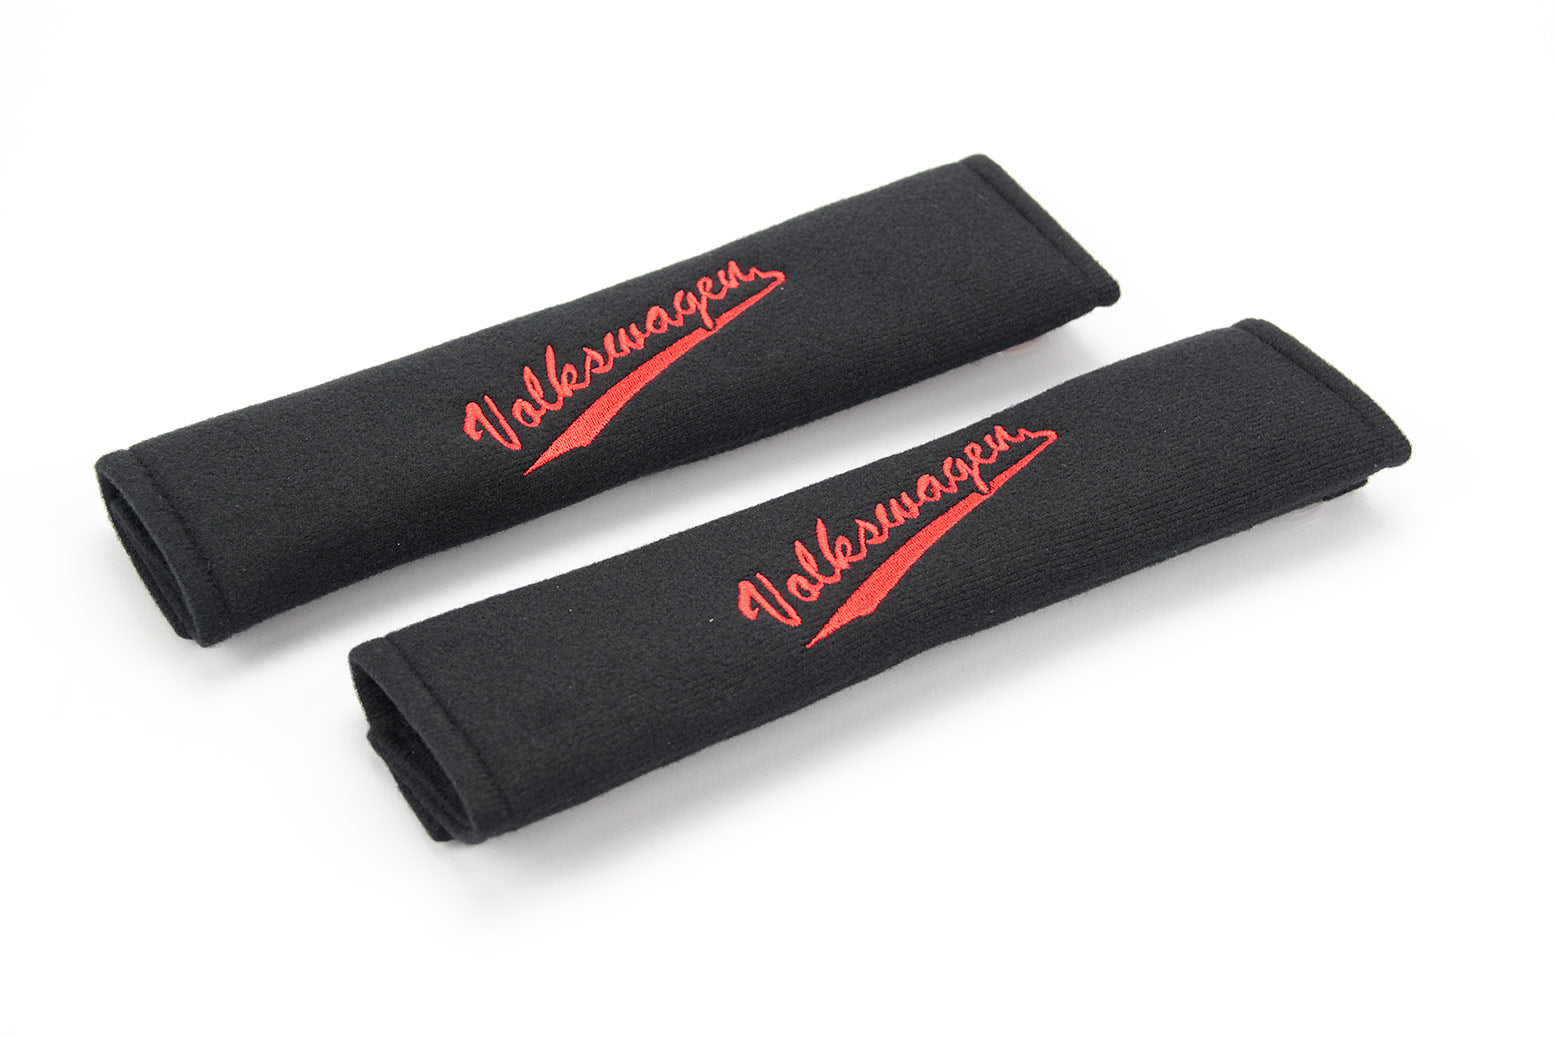 Embroidered padded seat belt cover with Volkswagen swoosh logo